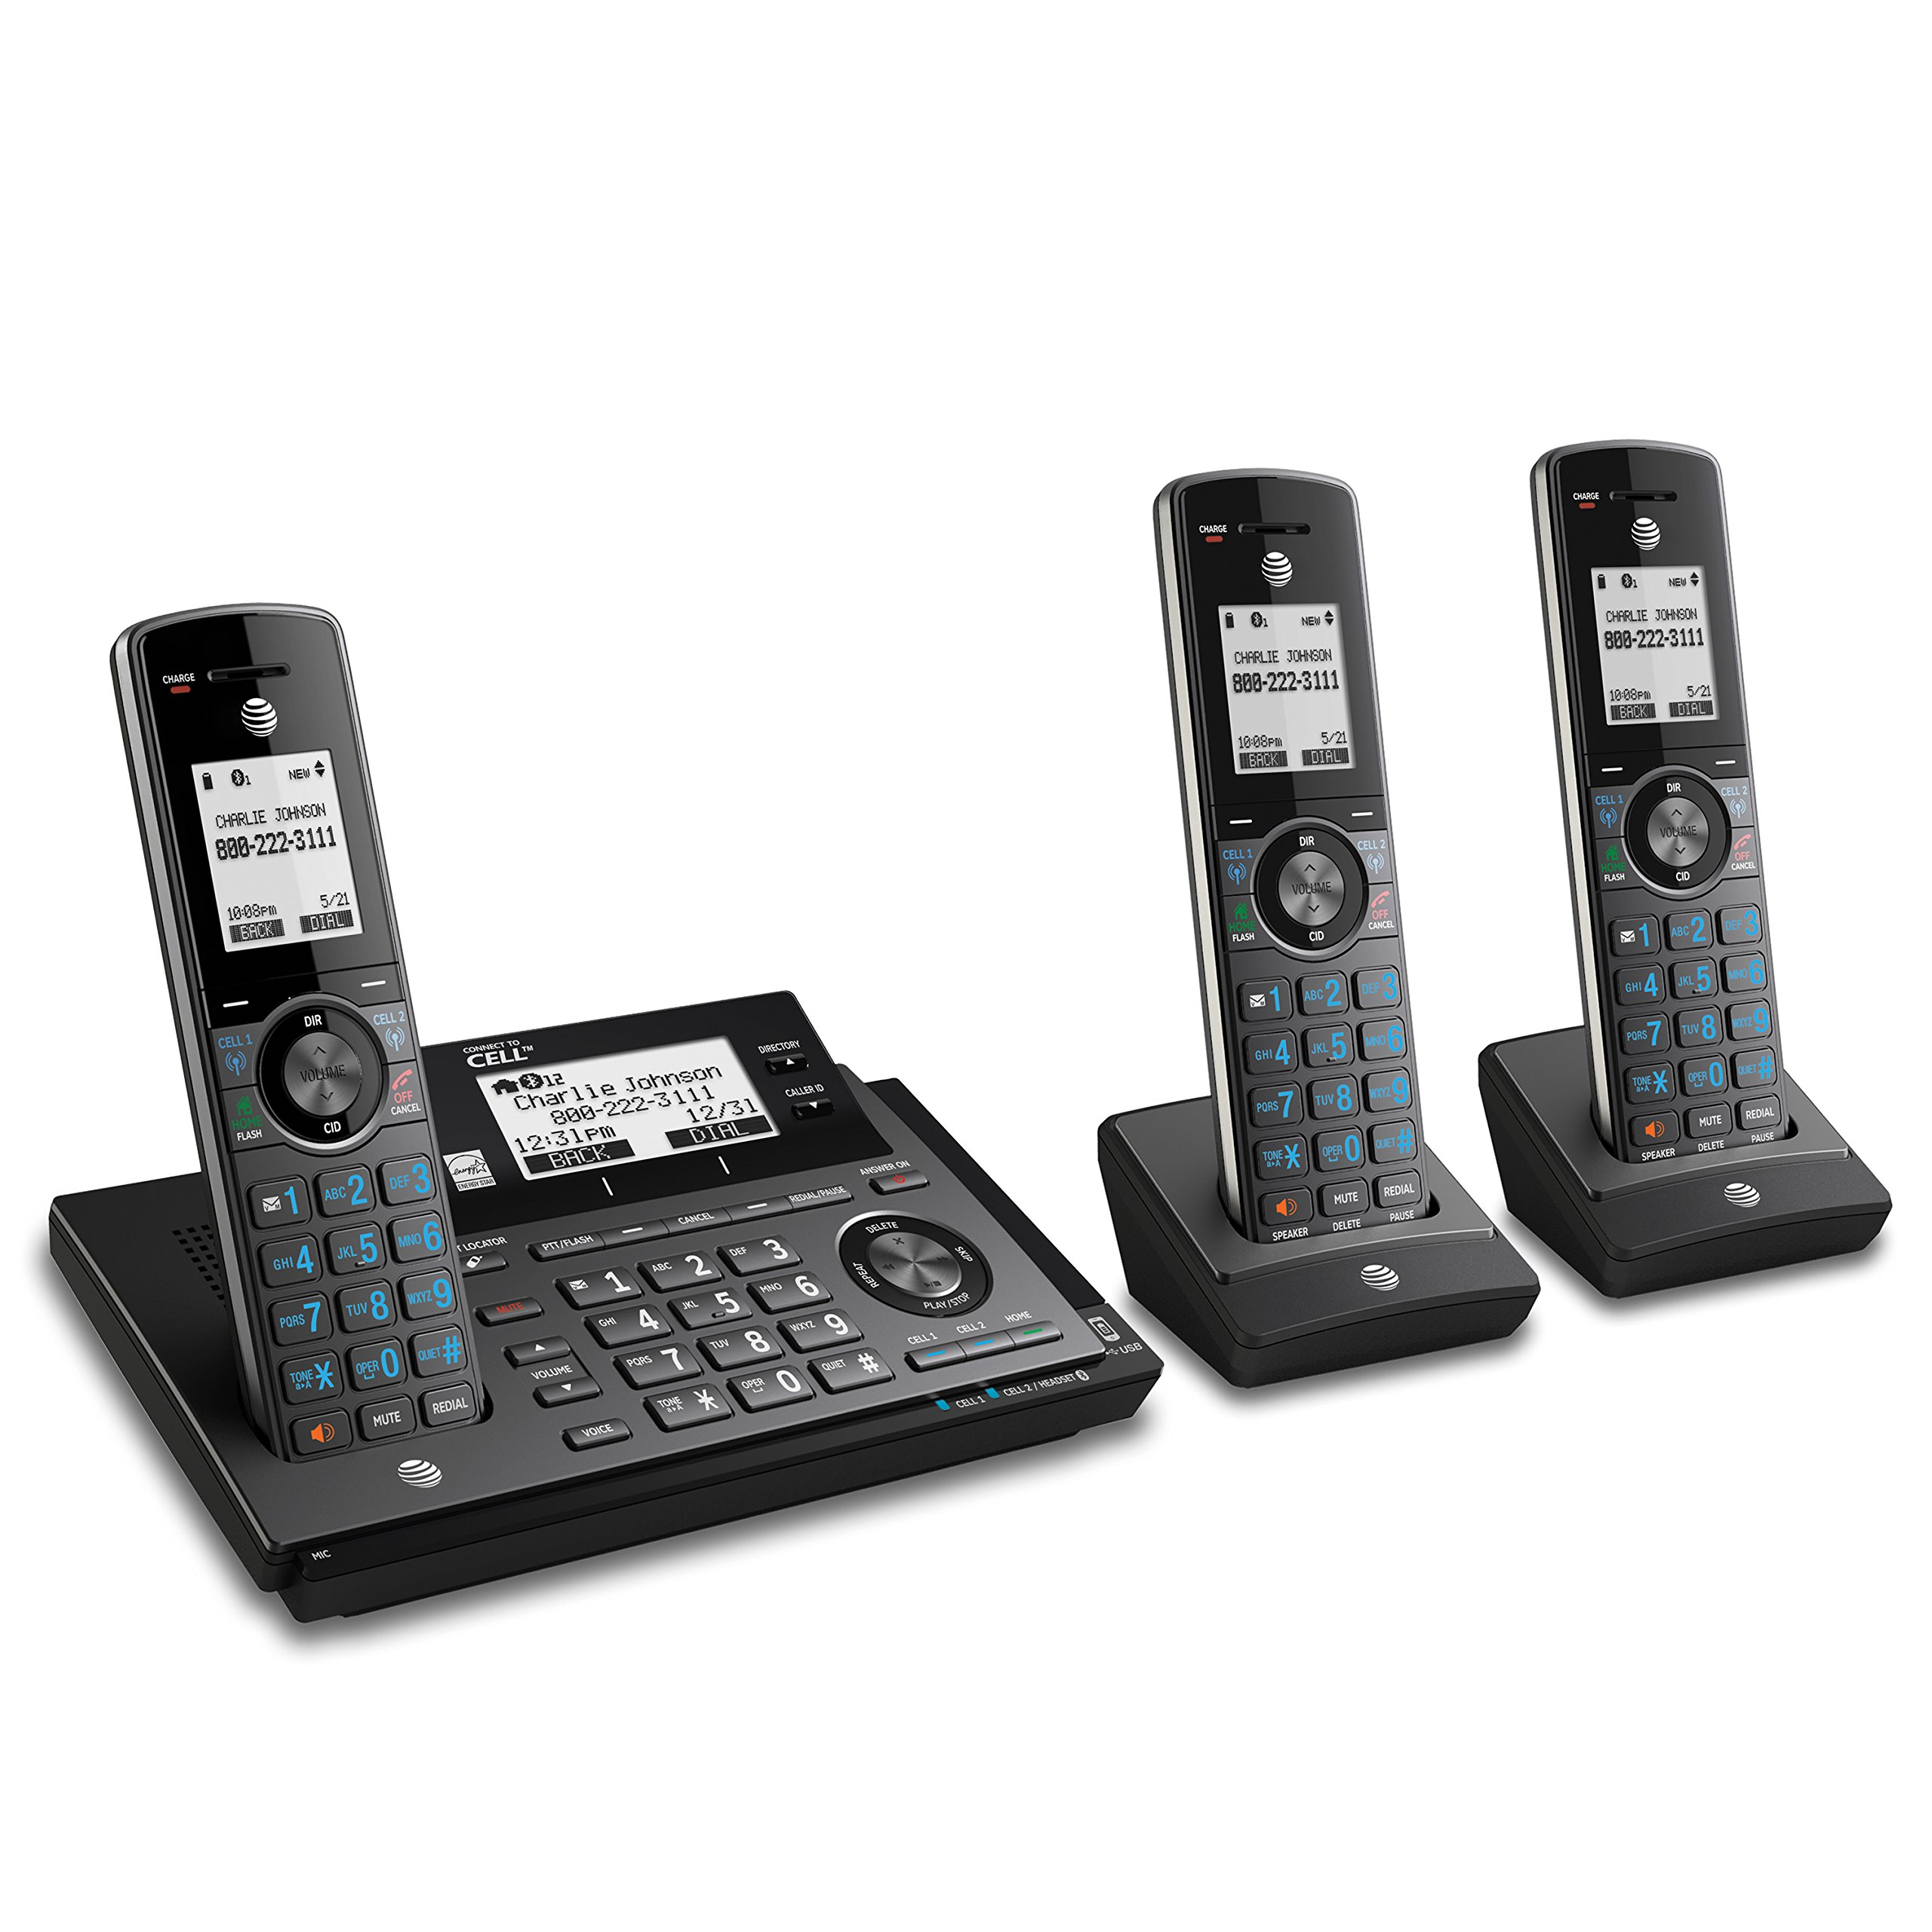 AT&T CLP99387 DECT 6.0 Expandable Cordless Phone with Bluetooth Connect to Cell, Smart Call Blocker and Answering System, Metallic Blue with 3 Handsets by AT&T